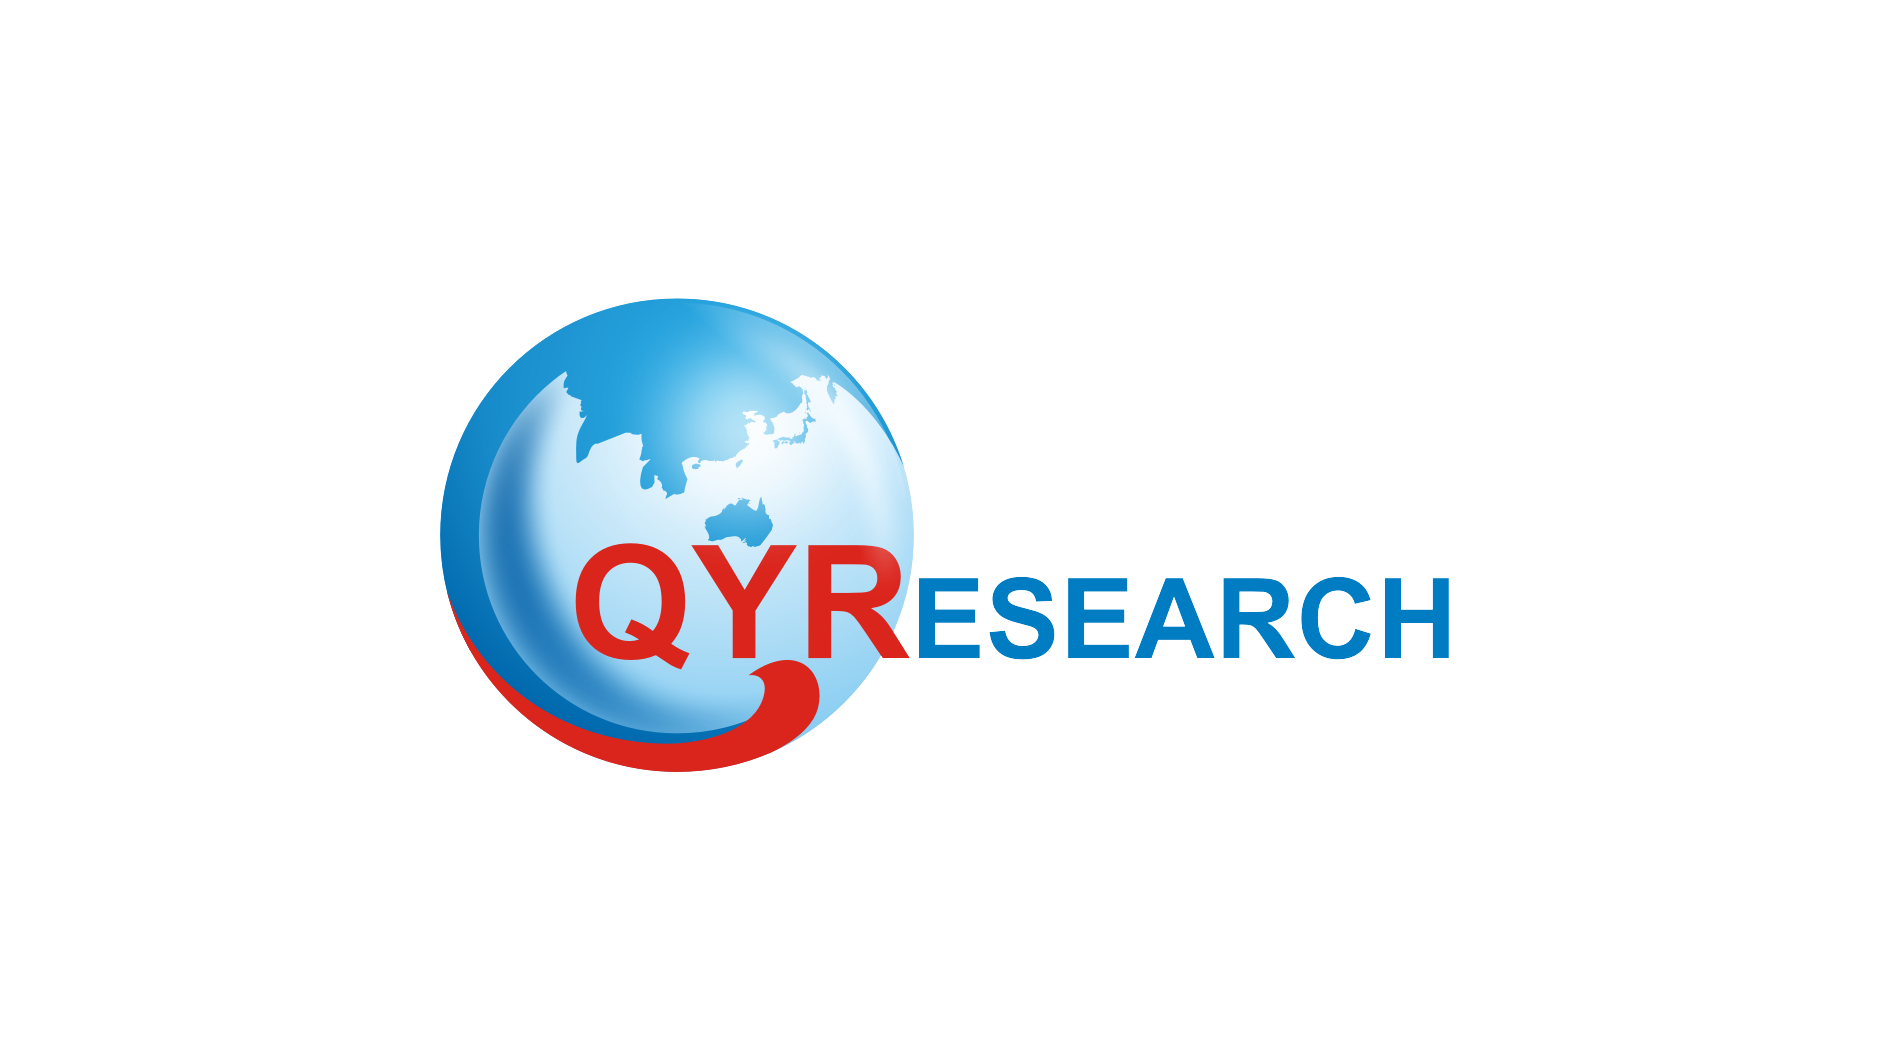 Global Fertility Test Market Size is Projected to Reach 583.1 million USD by 2023 - qyresearch.com